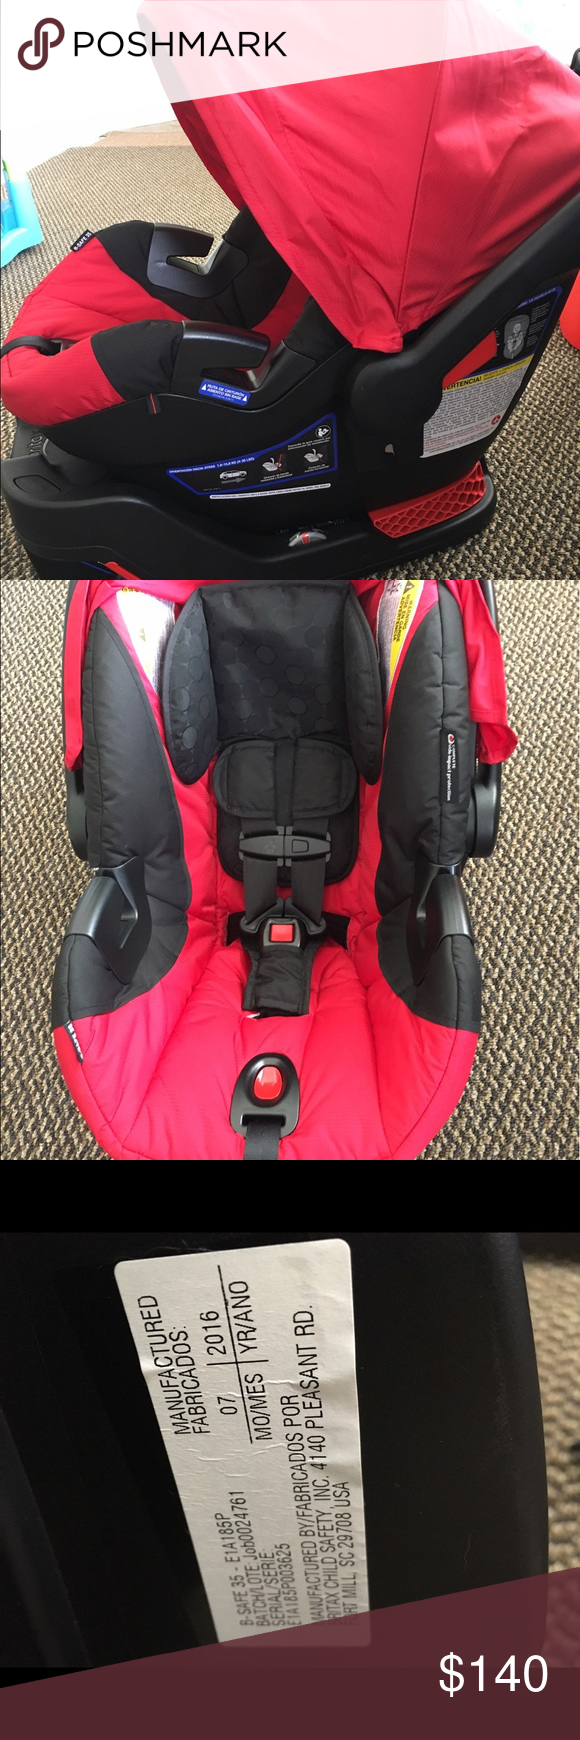 Britax car seat Britax b safe 35 infant car seat. Only